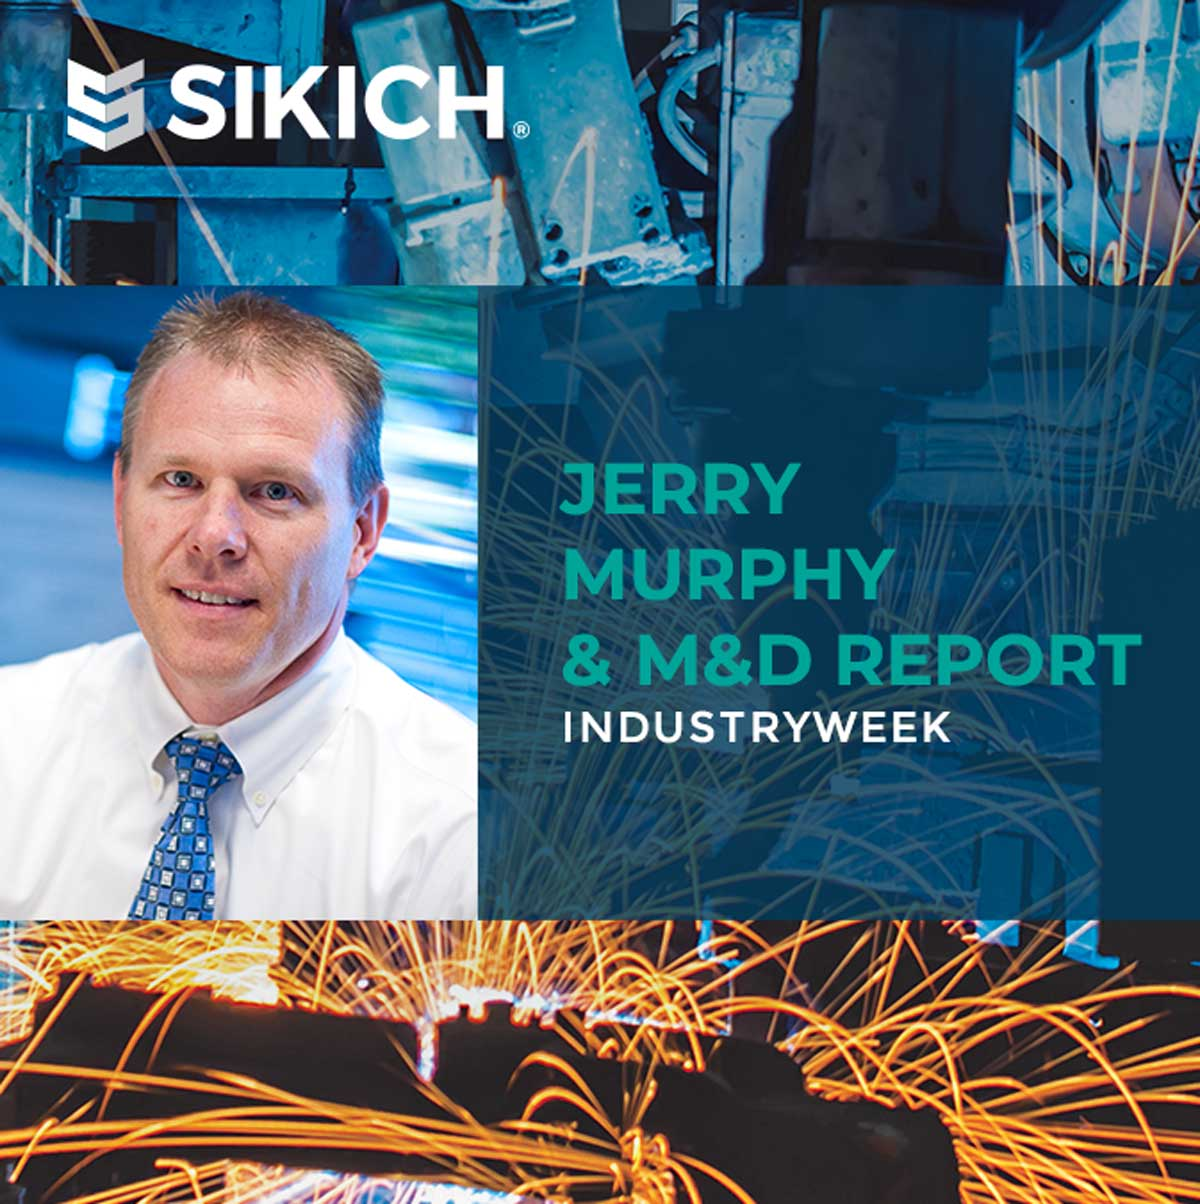 Featured Image of Jerry Murphy with Manufacturing Background